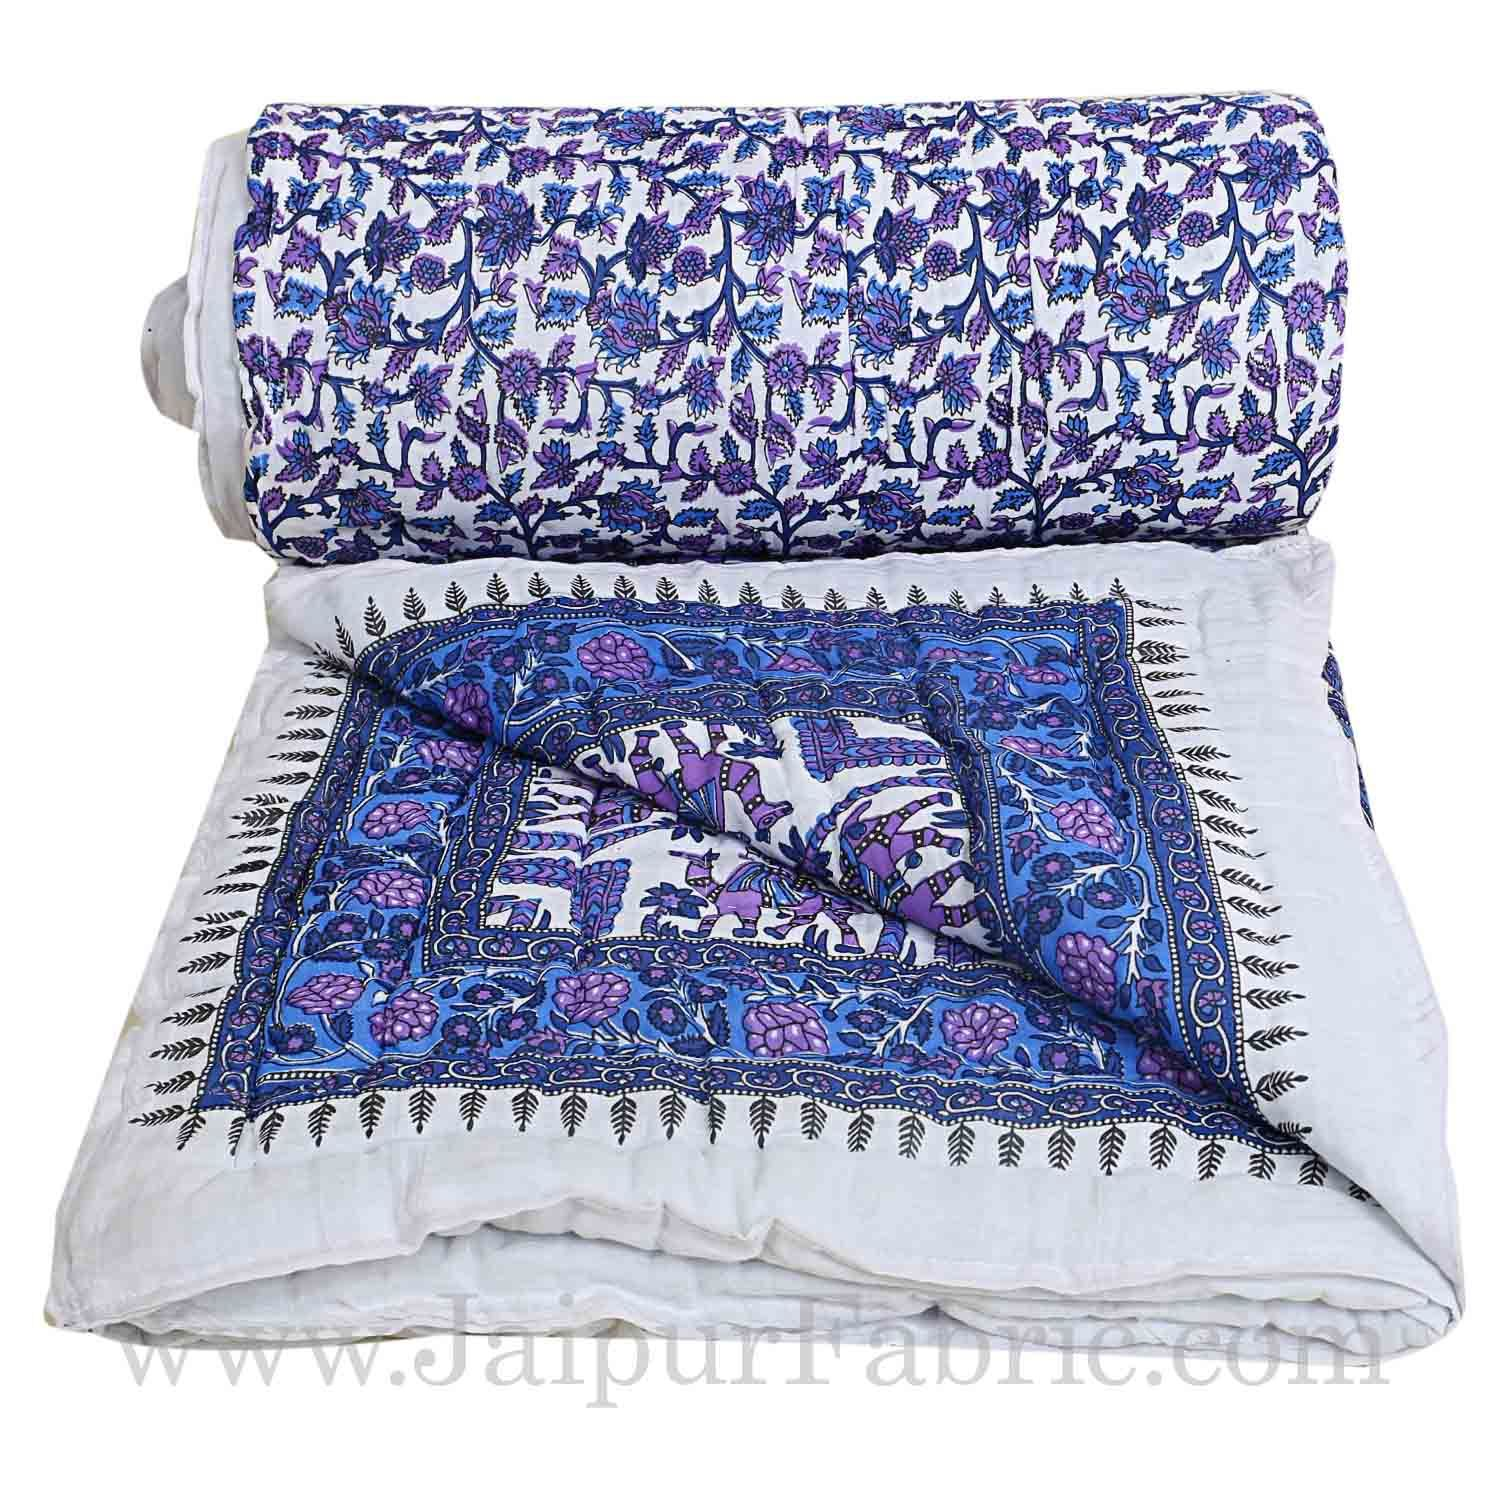 Double Bed Jaipur Razai (Quilt) Blue Pattern Camel  Mughal Print